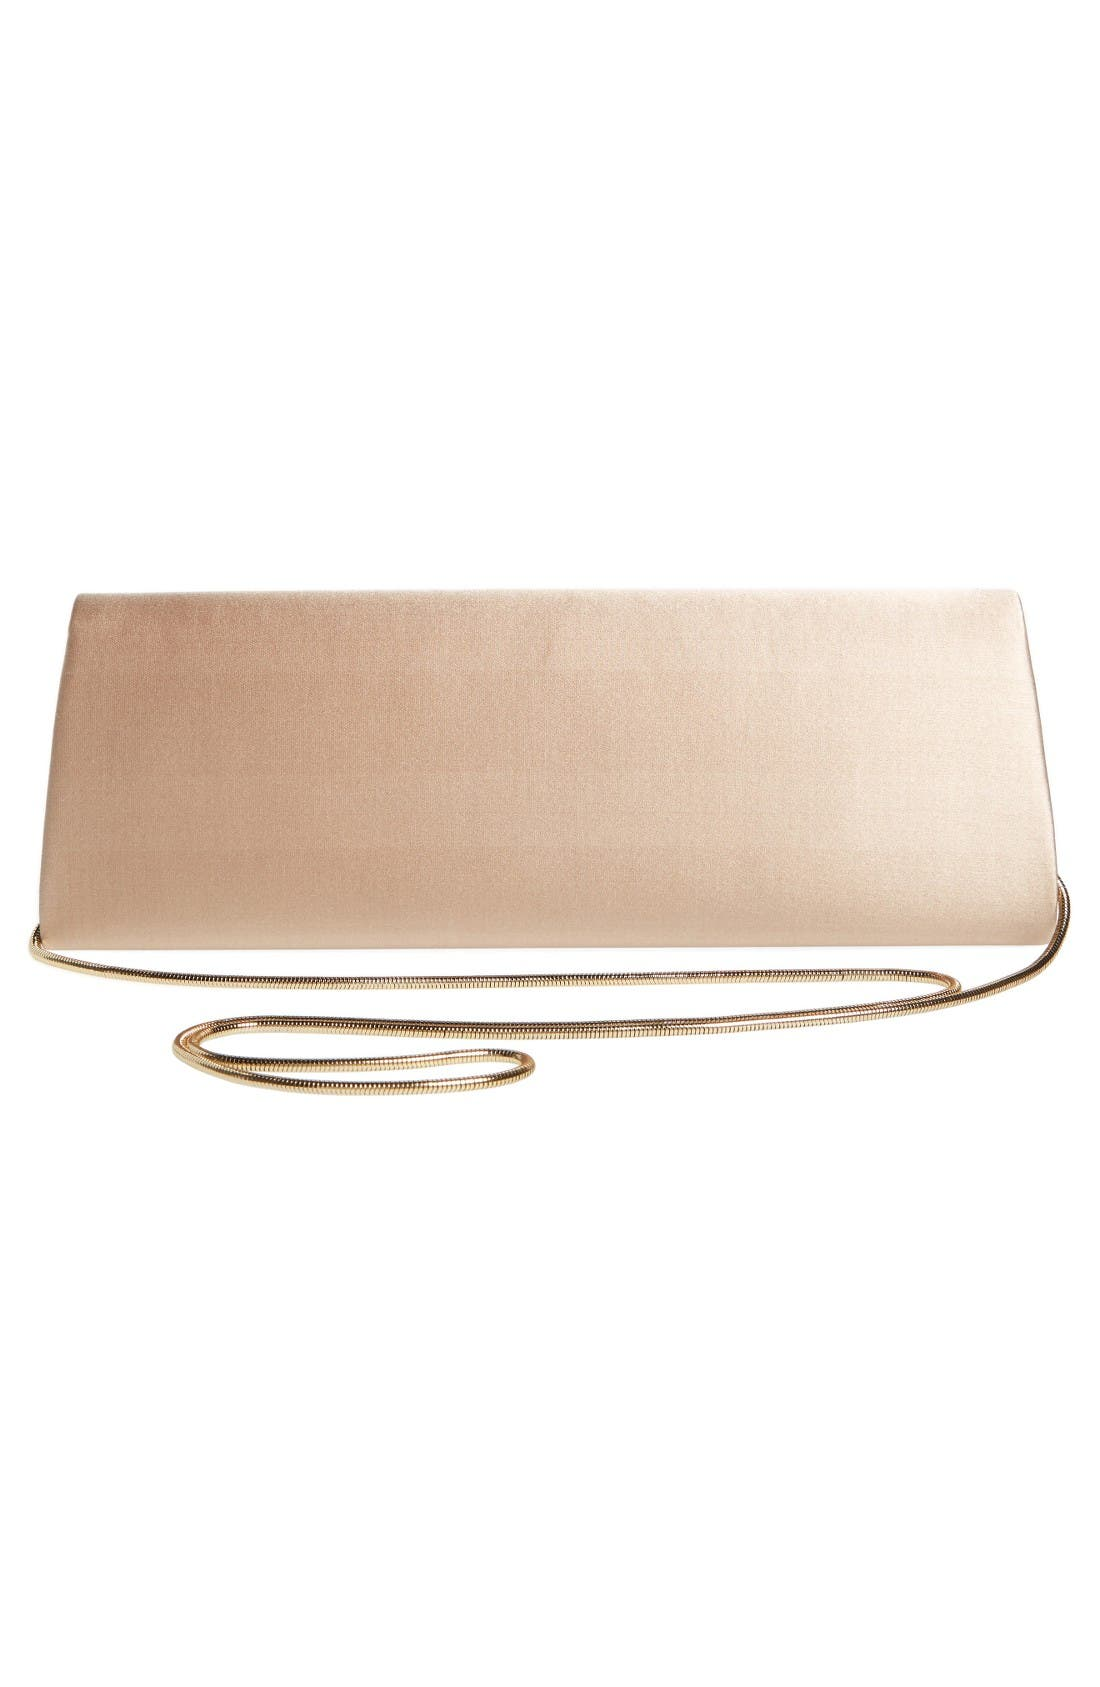 Alternate Image 3  - Badgley Mischka Aria Clutch